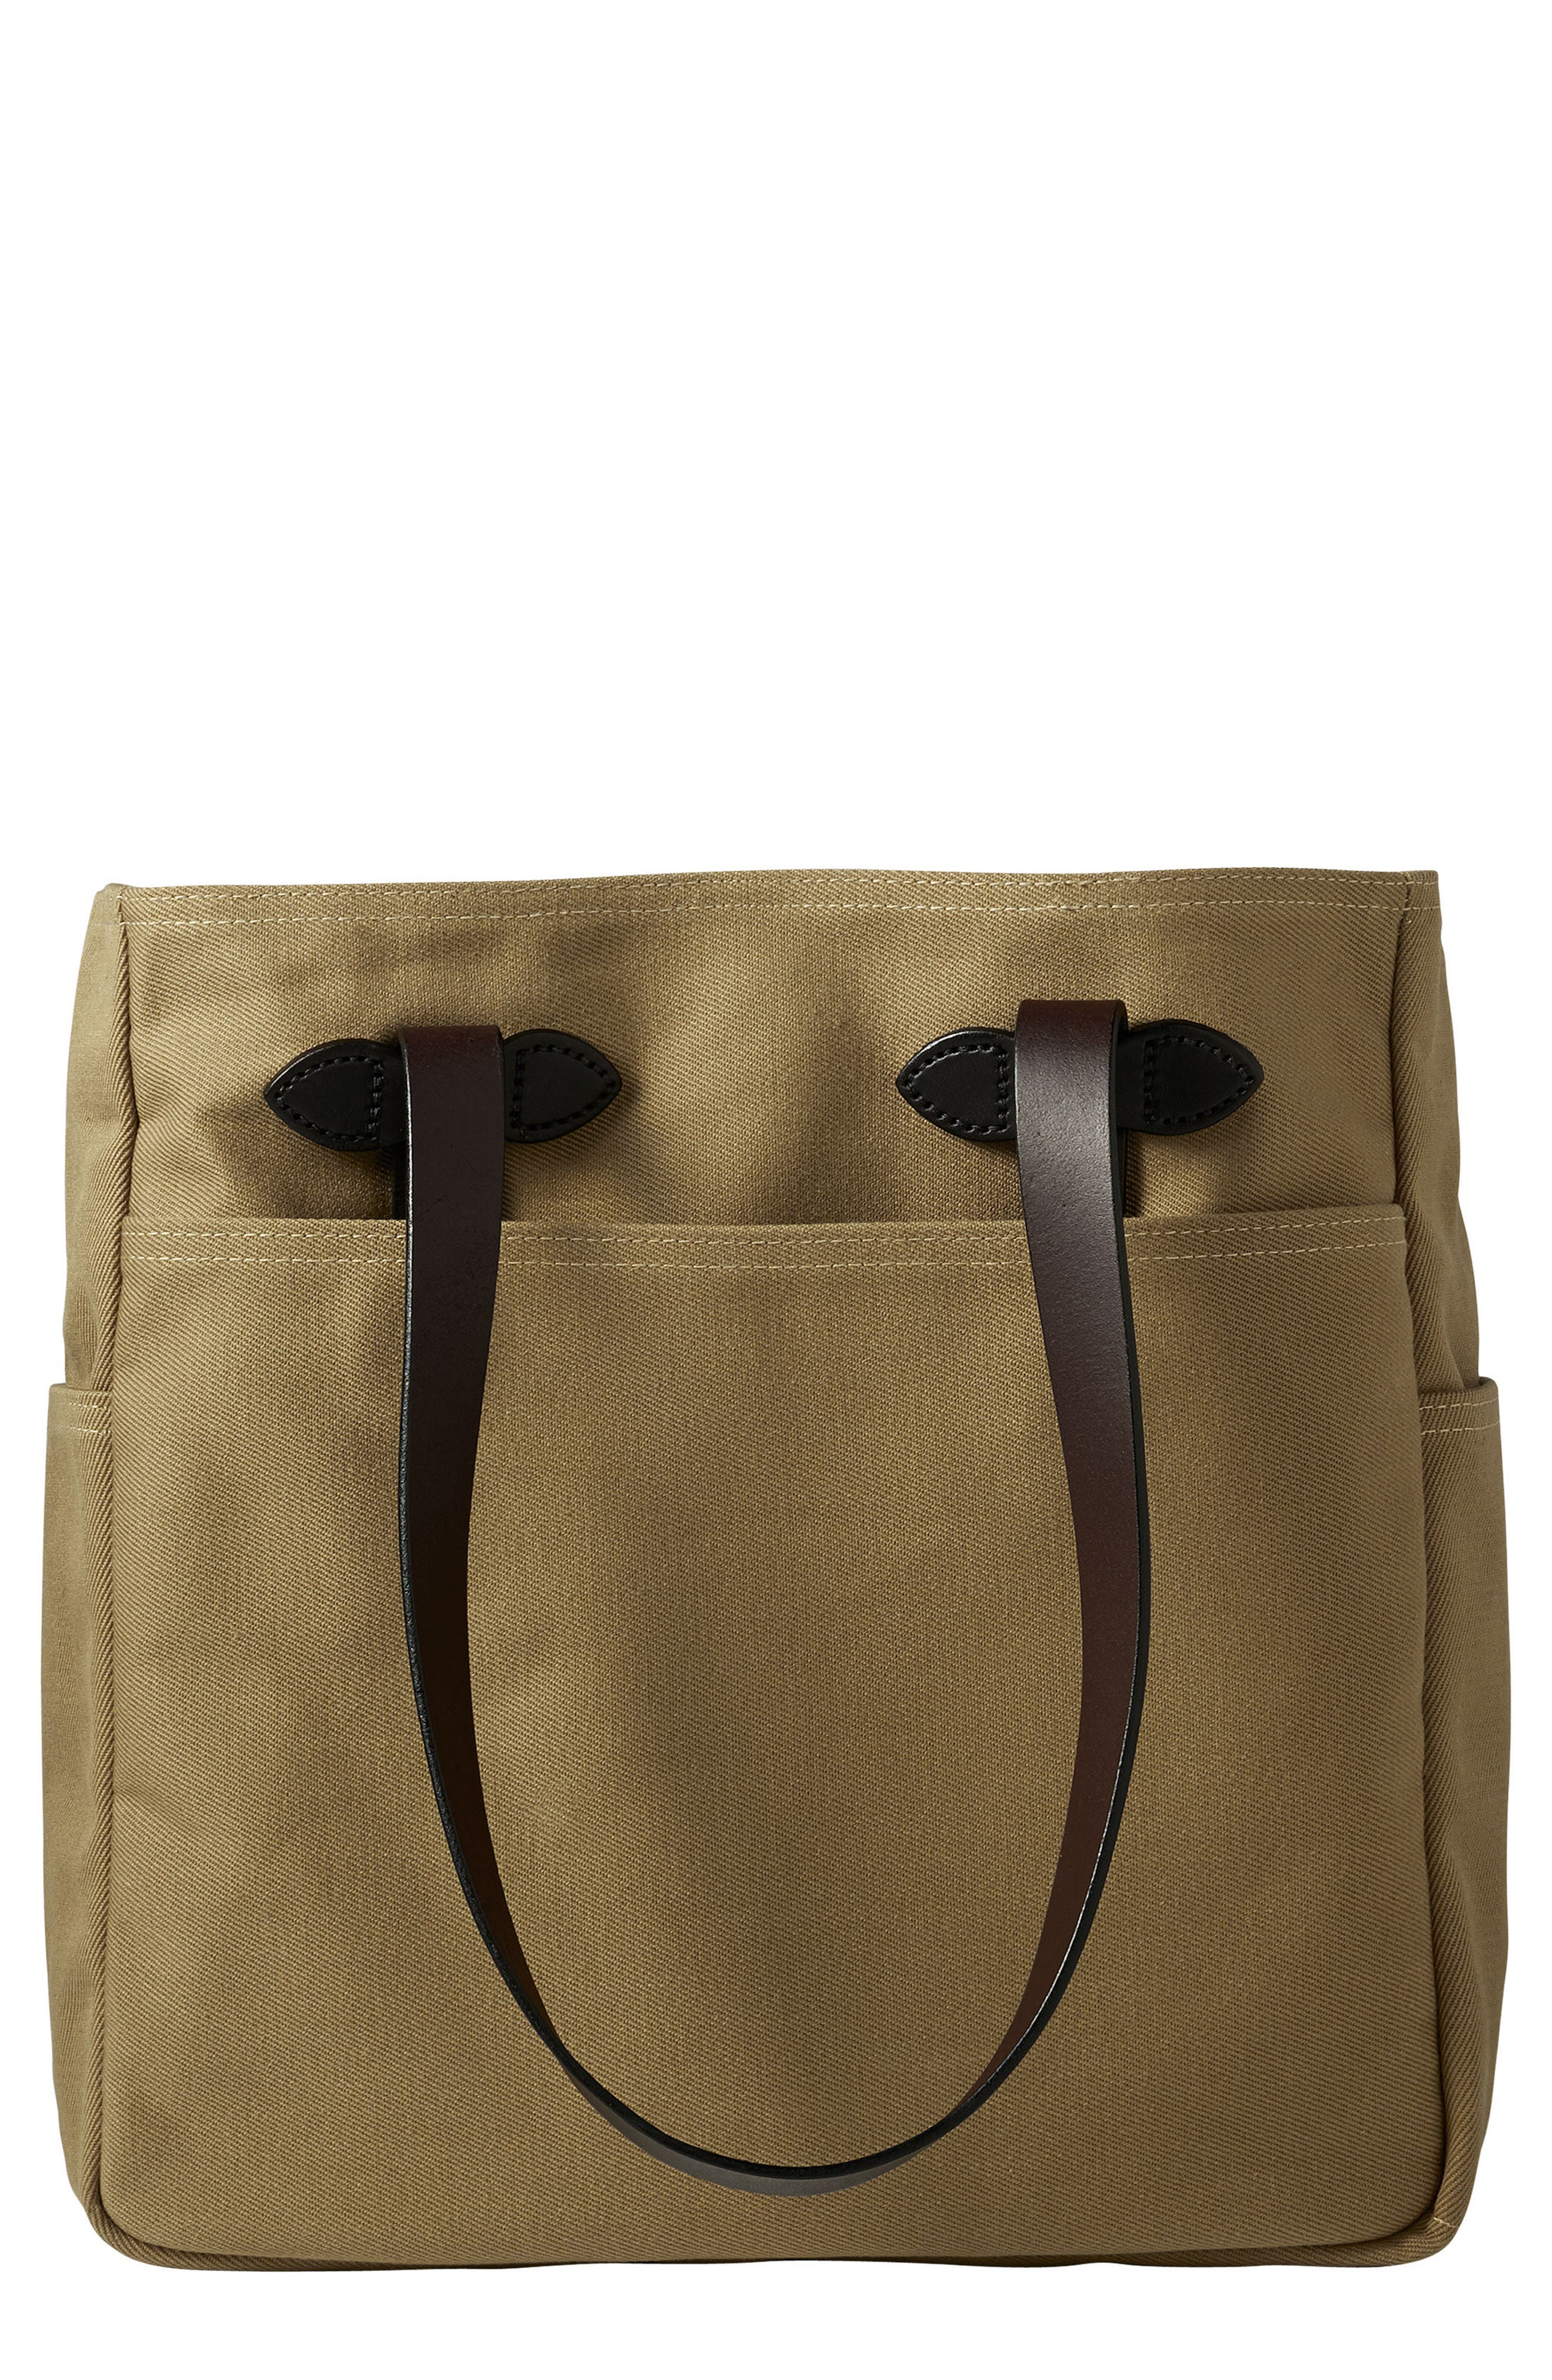 Rugged Twill Tote Bag,                         Main,                         color, Tan